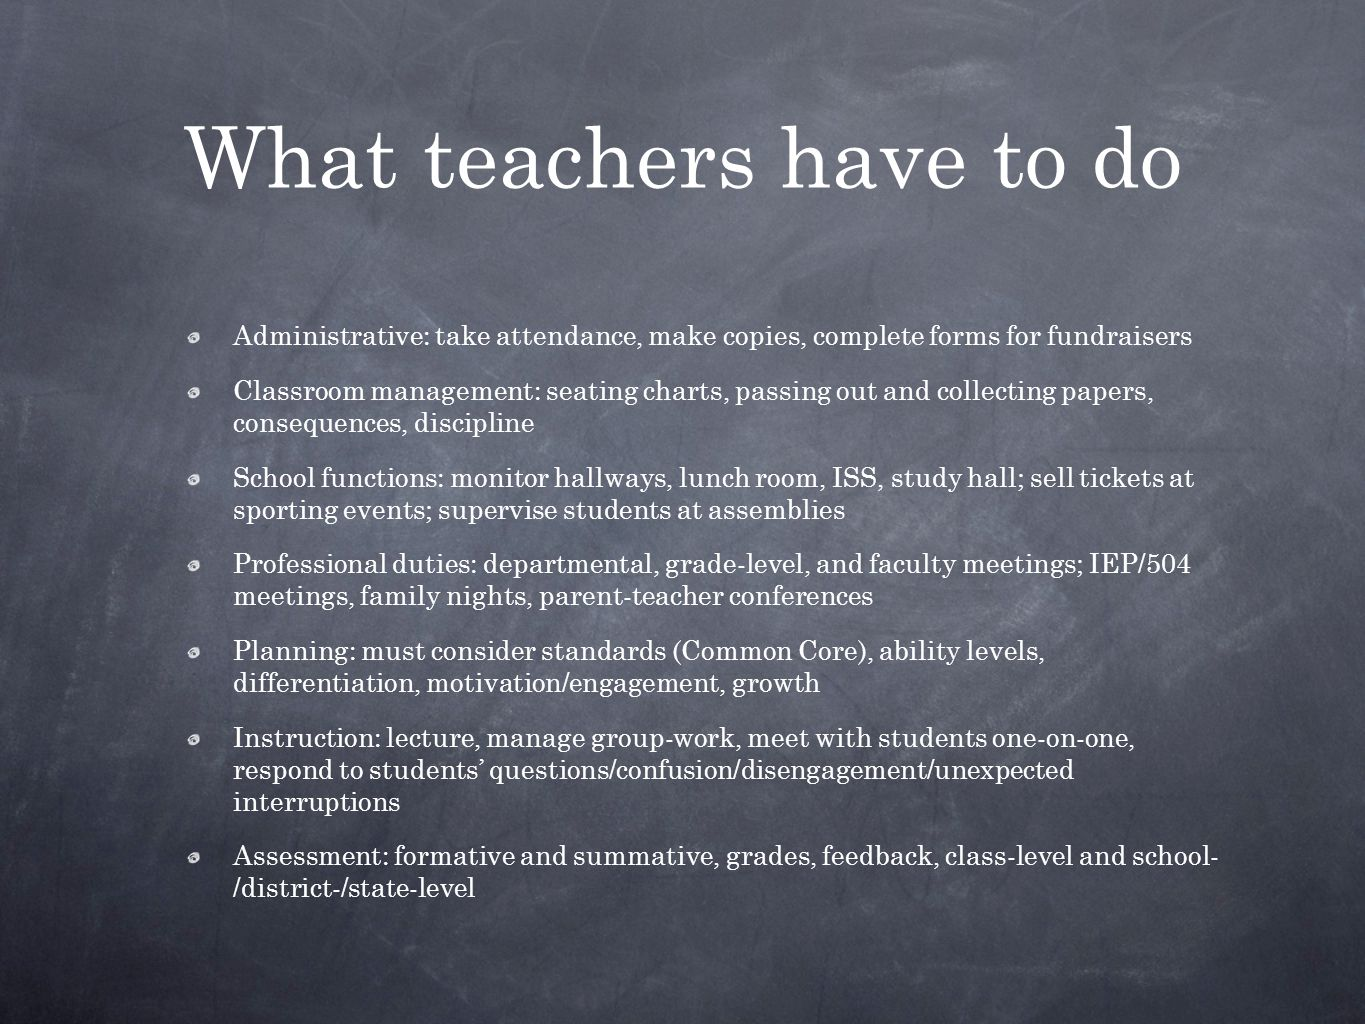 What teachers have to do Administrative: take attendance, make copies, complete forms for fundraisers Classroom management: seating charts, passing out and collecting papers, consequences, discipline School functions: monitor hallways, lunch room, ISS, study hall; sell tickets at sporting events; supervise students at assemblies Professional duties: departmental, grade-level, and faculty meetings; IEP/504 meetings, family nights, parent-teacher conferences Planning: must consider standards (Common Core), ability levels, differentiation, motivation/engagement, growth Instruction: lecture, manage group-work, meet with students one-on-one, respond to students' questions/confusion/disengagement/unexpected interruptions Assessment: formative and summative, grades, feedback, class-level and school- /district-/state-level